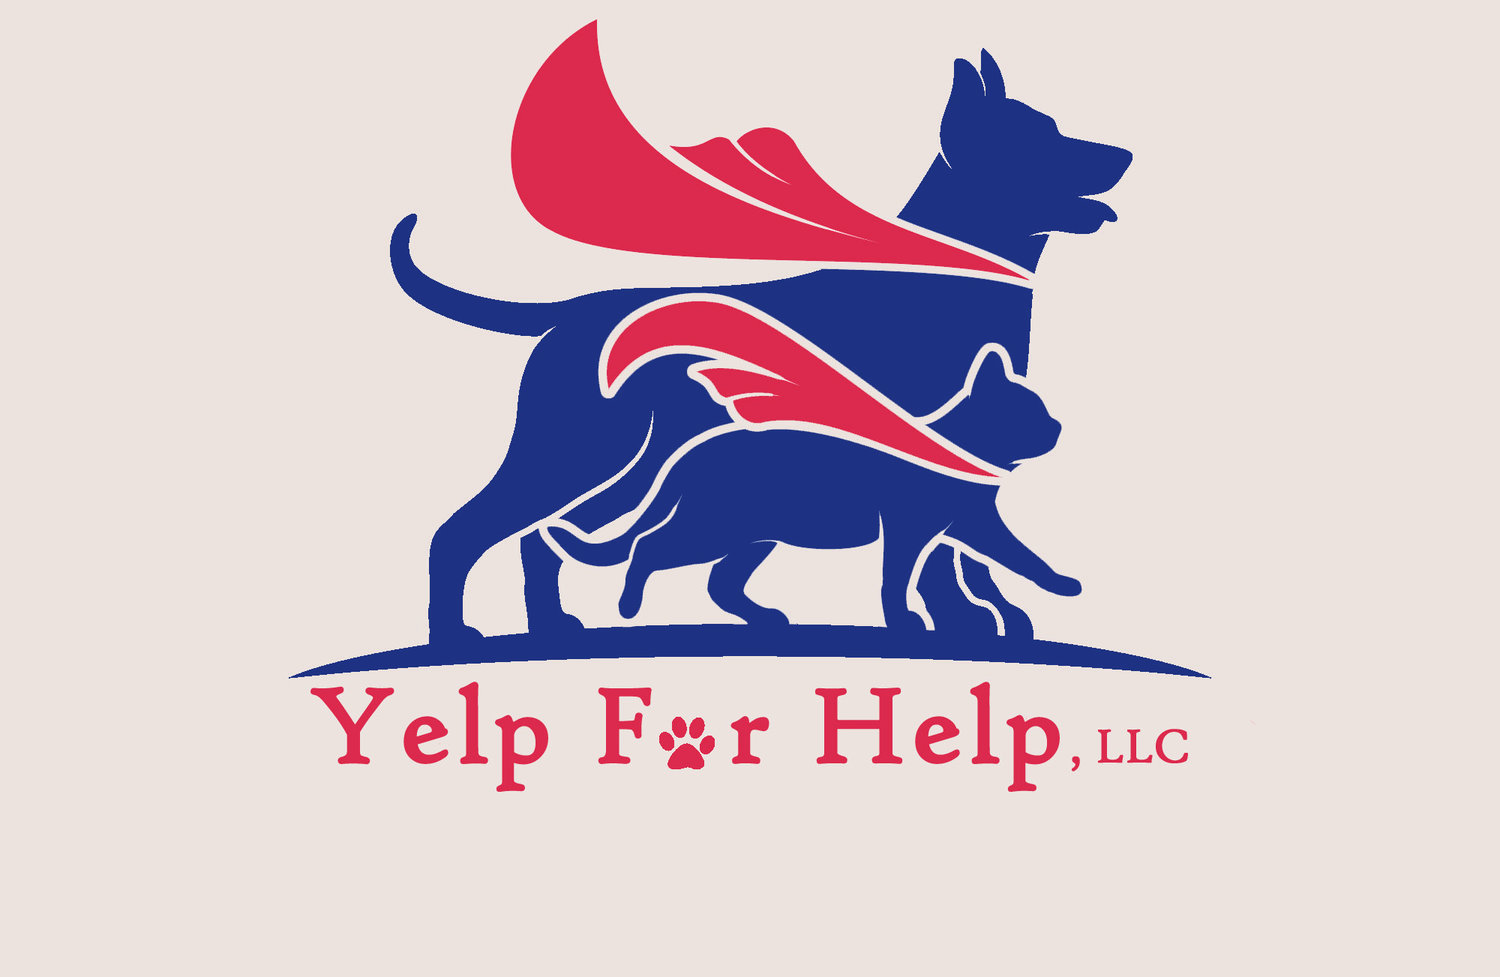 Yelp For Help